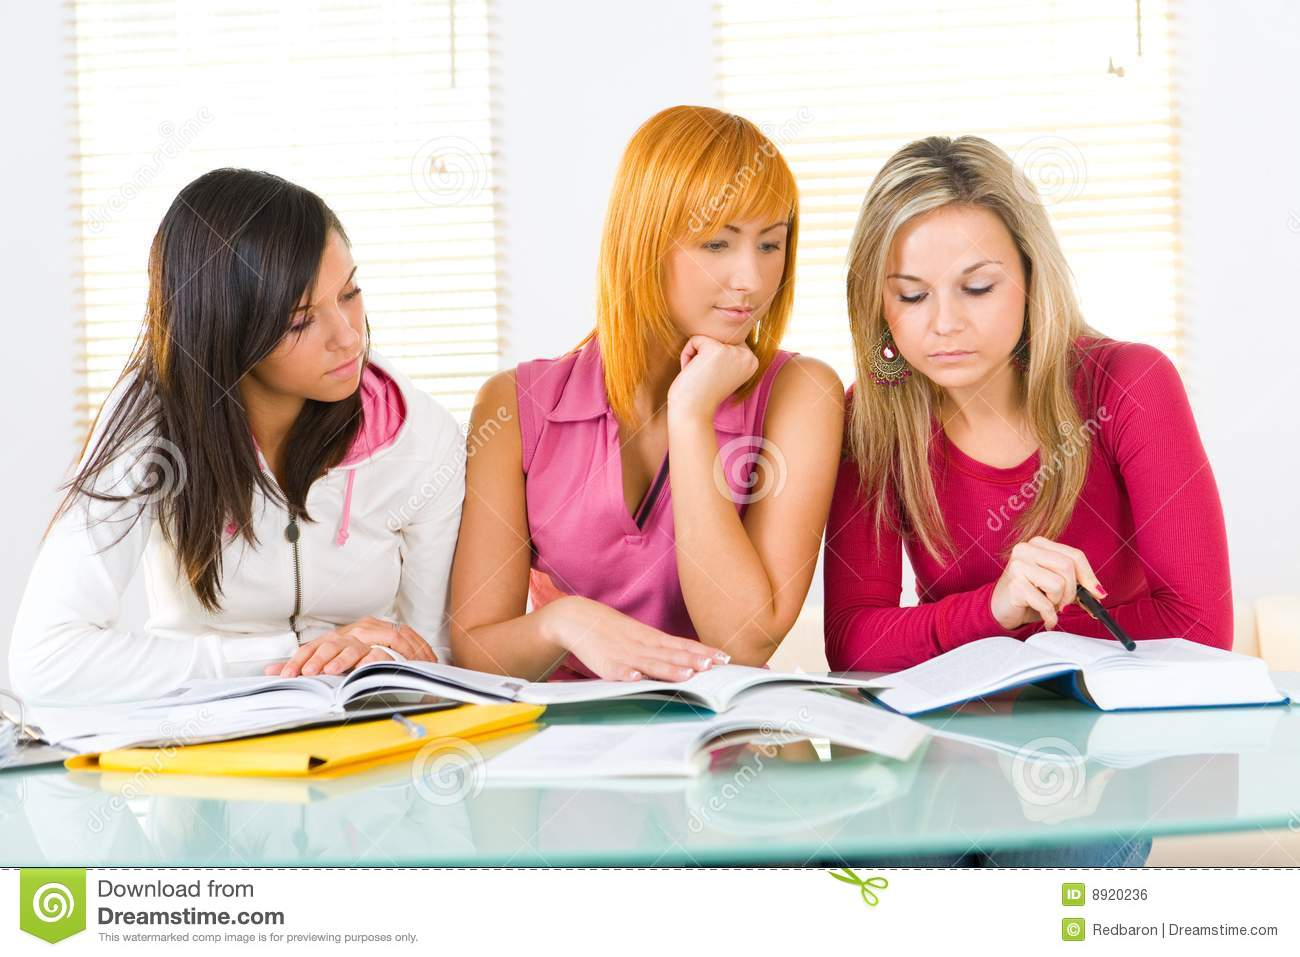 primeessaywritings.com reviews Prime essay writings provides you with an opportunity to buy written essays online you can therefore buy term papers, term paper topics, buy essay, buy.